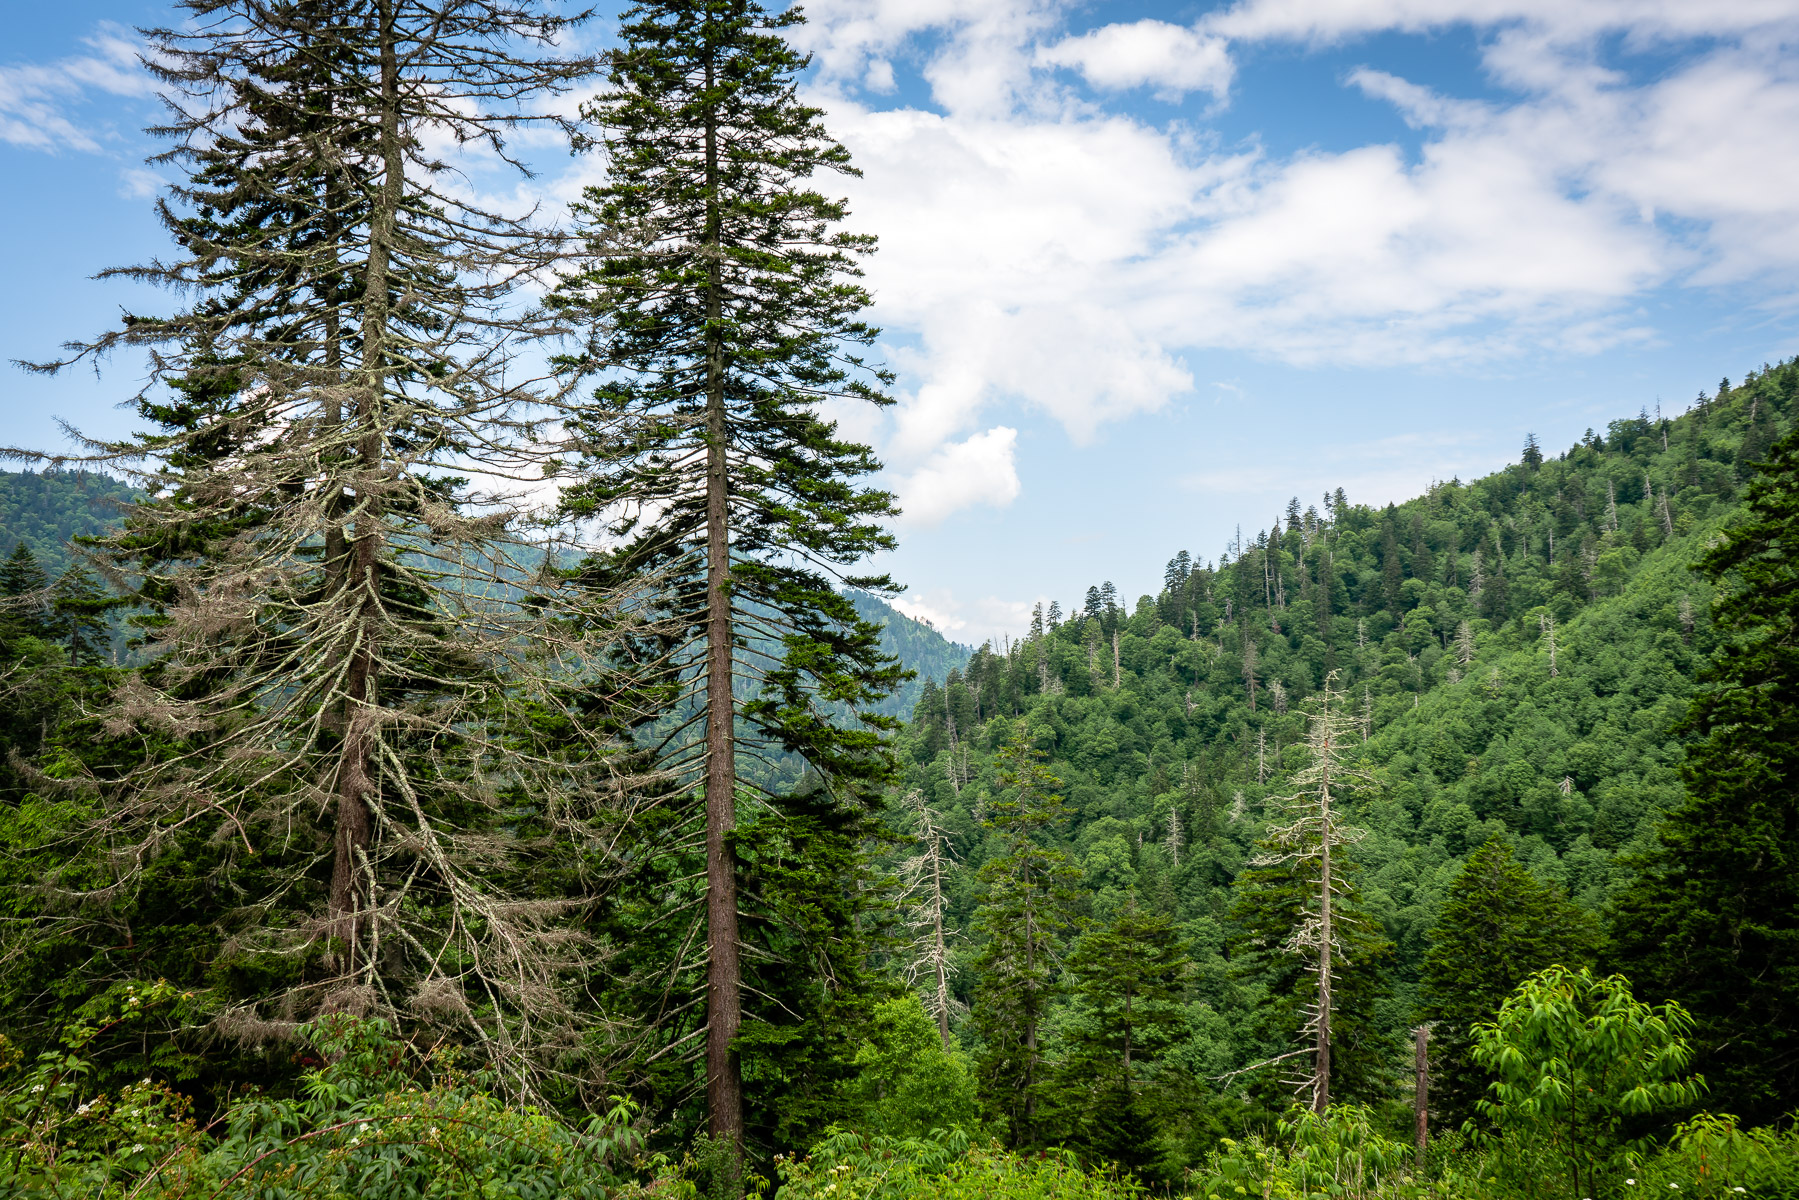 The piney forests of Tennessee's Great Smoky Mountains National Park.